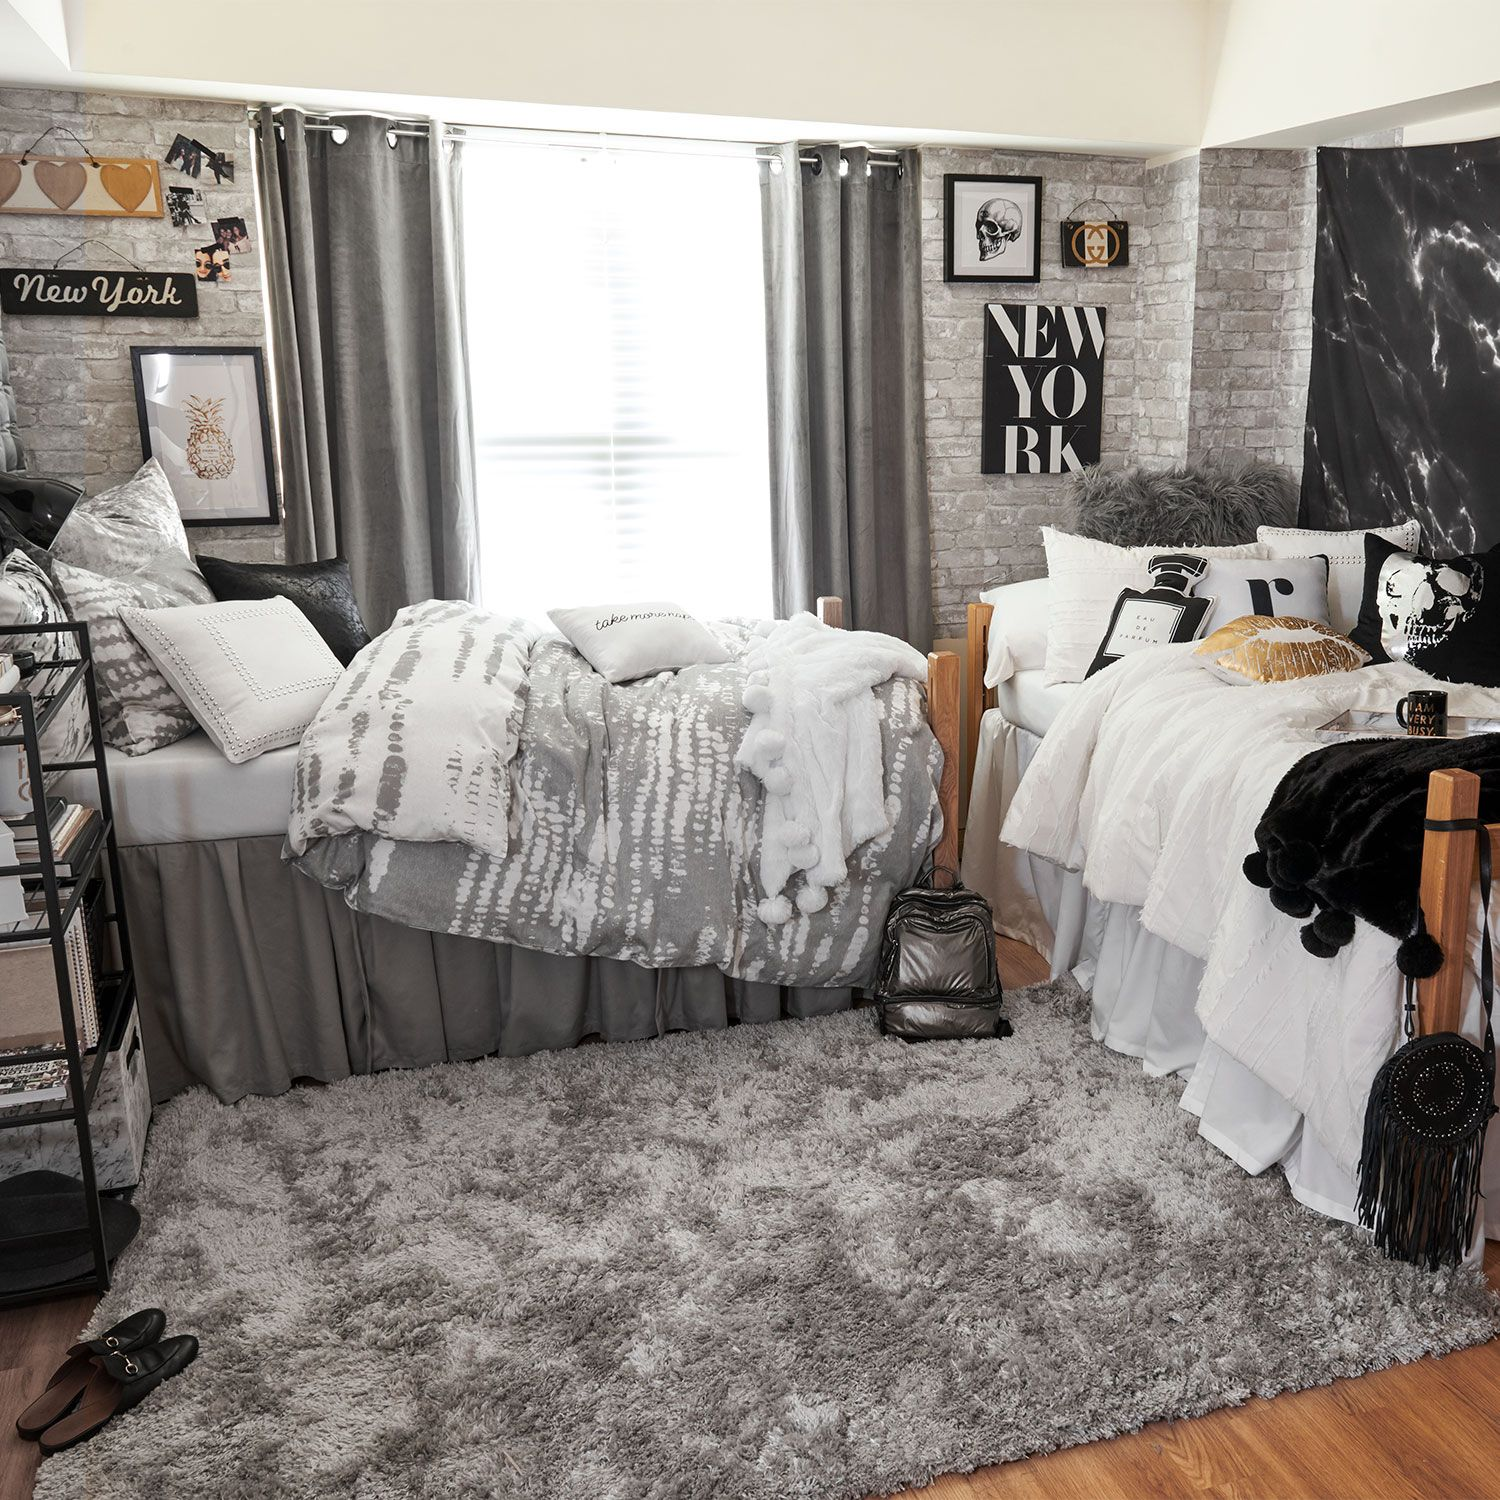 Dorm Room Carpet 16 Best Dorm Room Transformations Of All Time Most Amazing